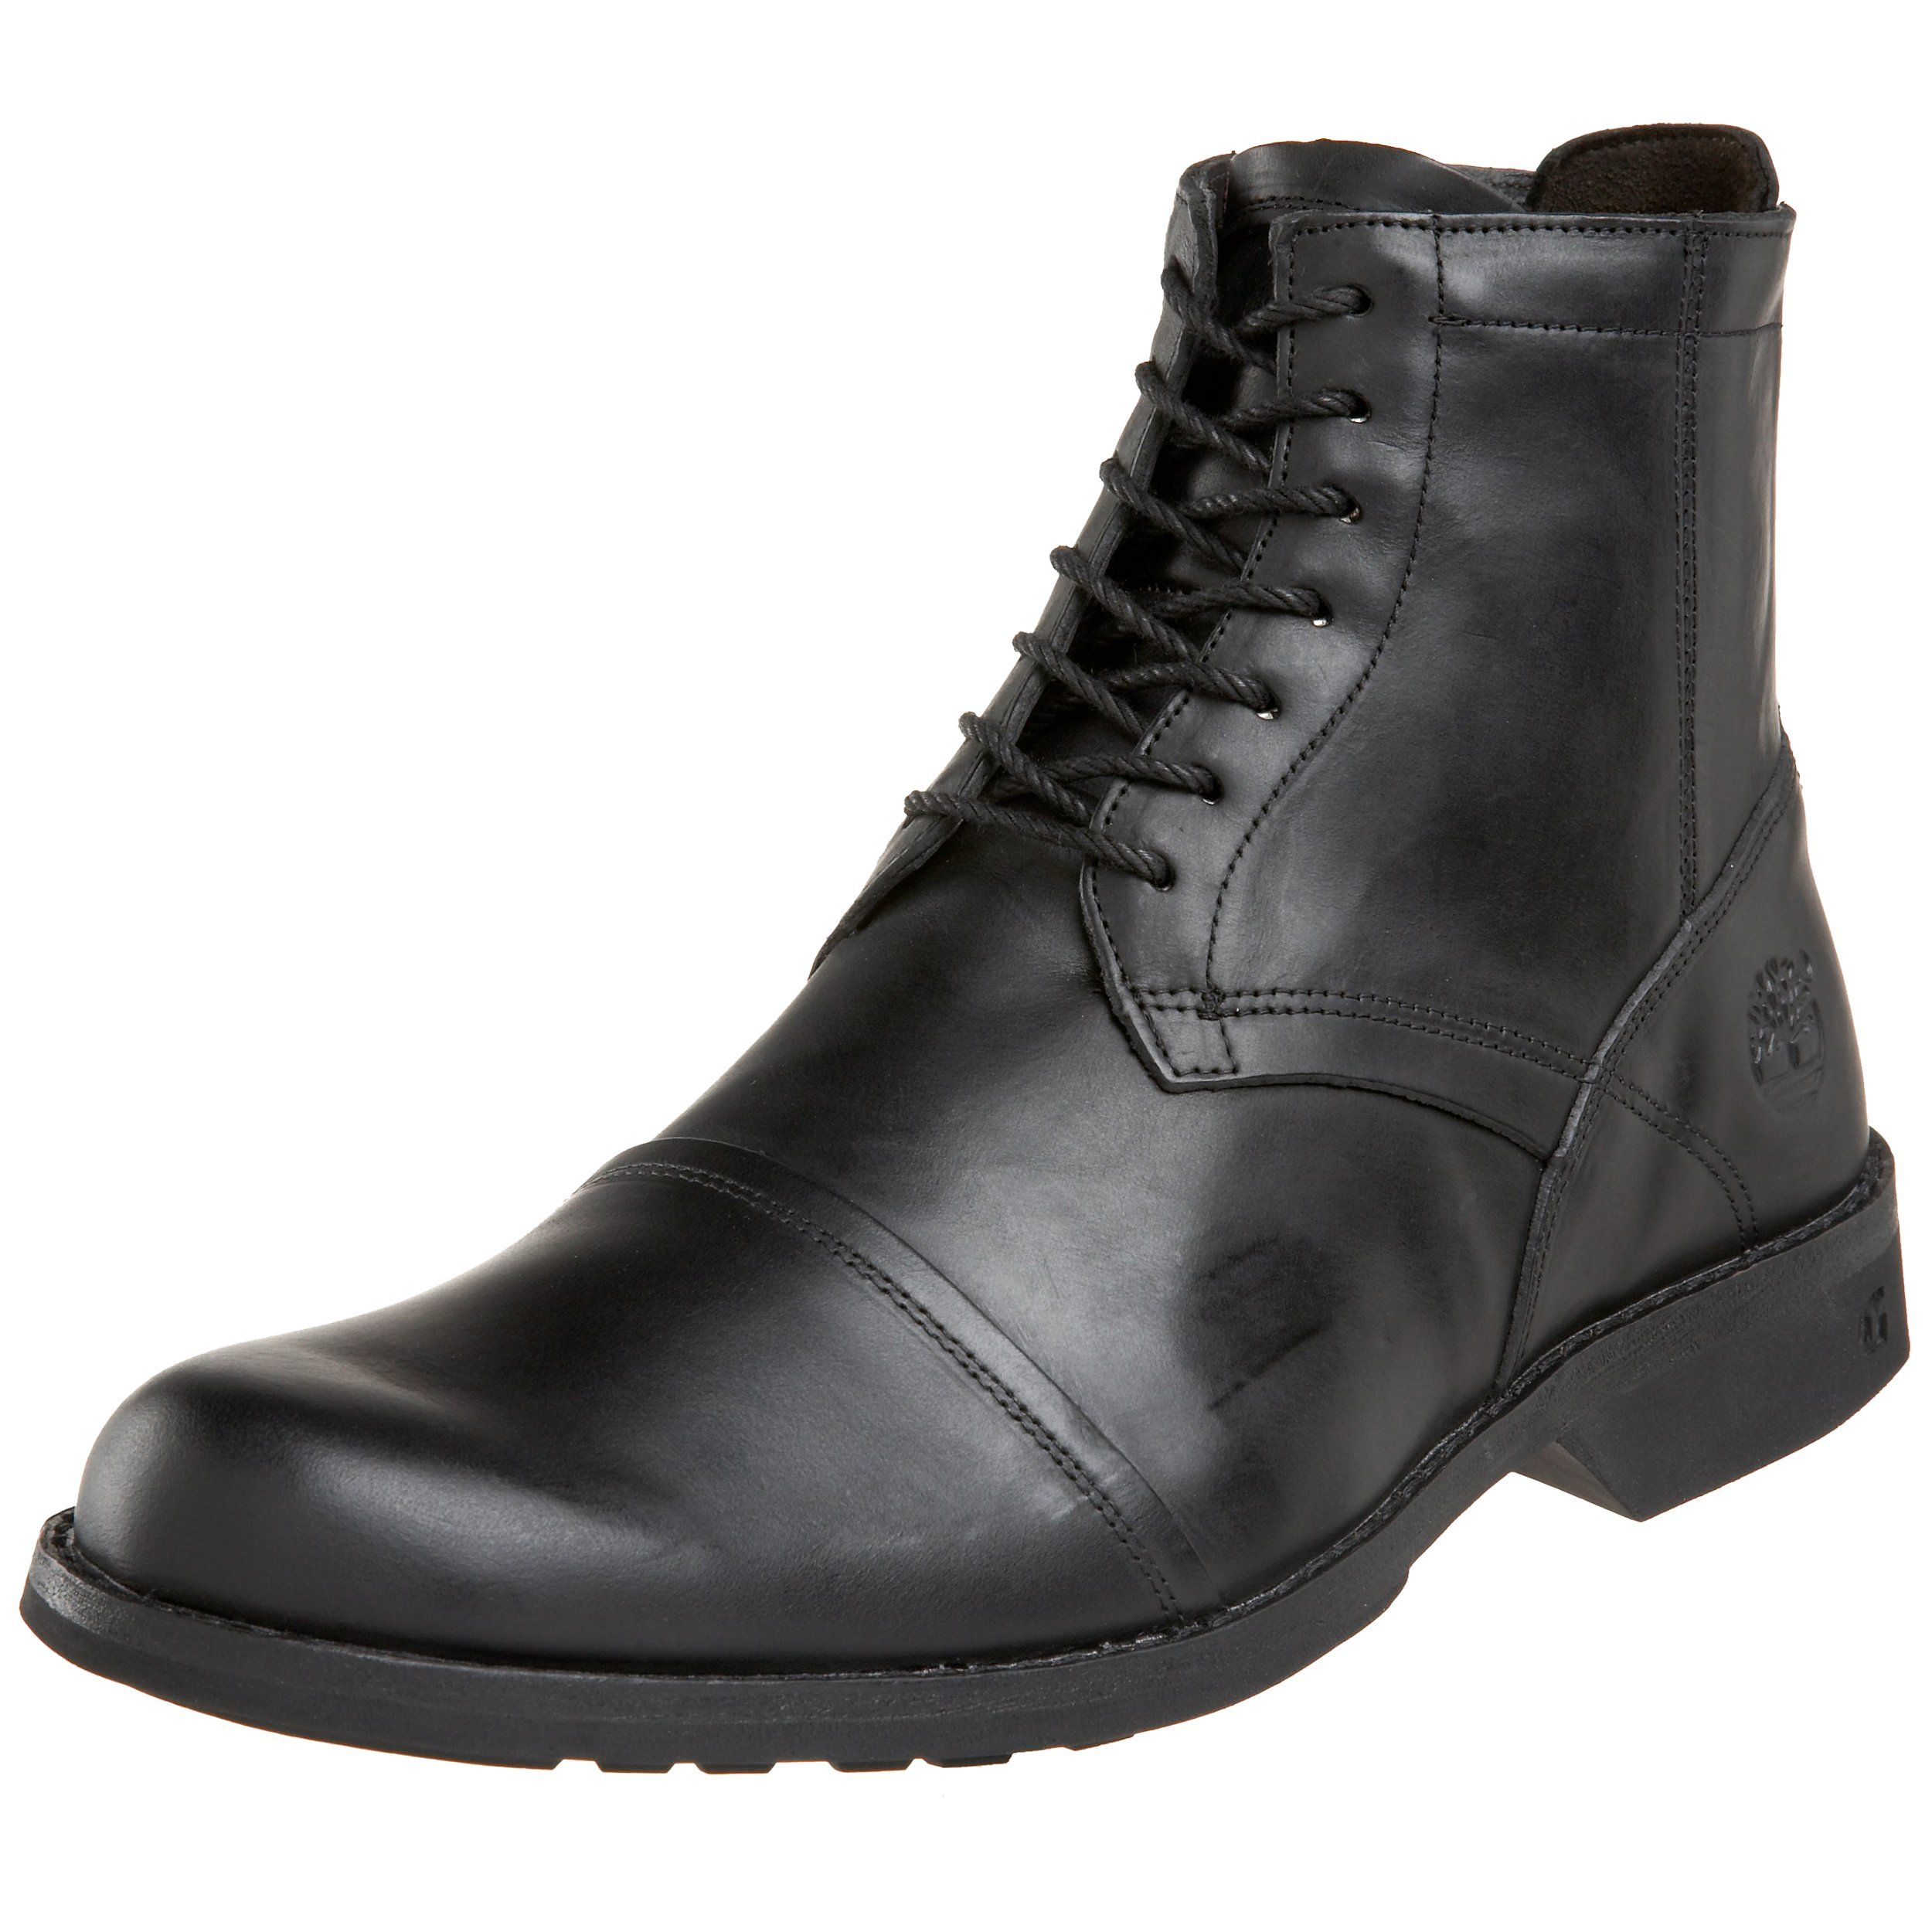 pretty nice 73a11 65209 Timberland Mens City 6Inch SideZip BootBurnished Black7.5 M ...